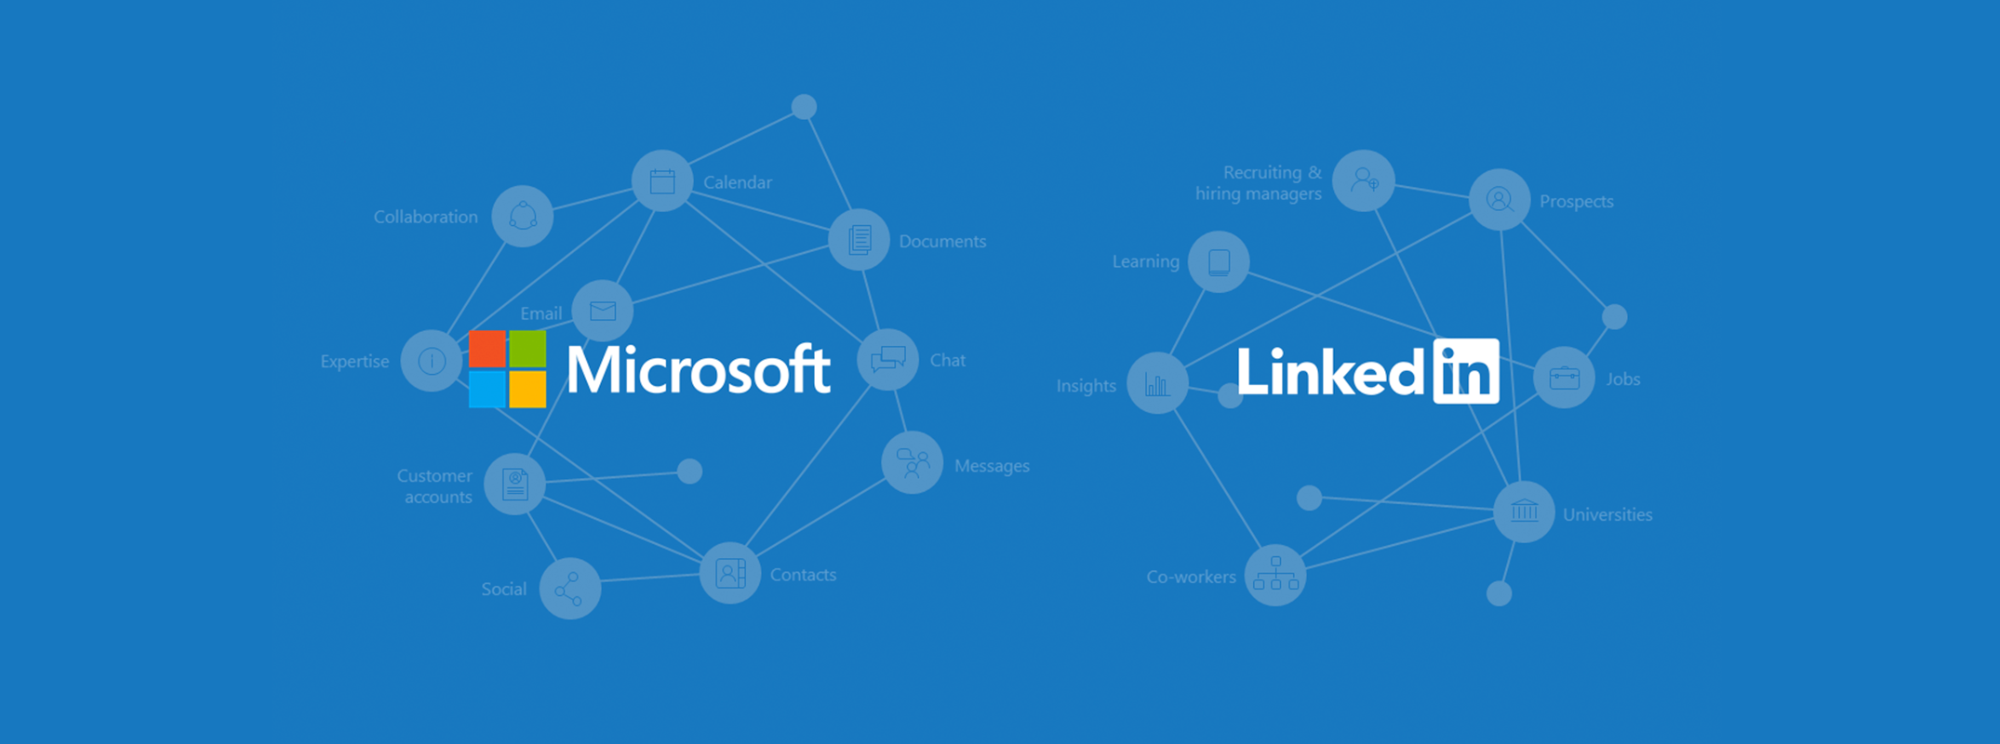 Microsoft-LinkedIn Acquisition